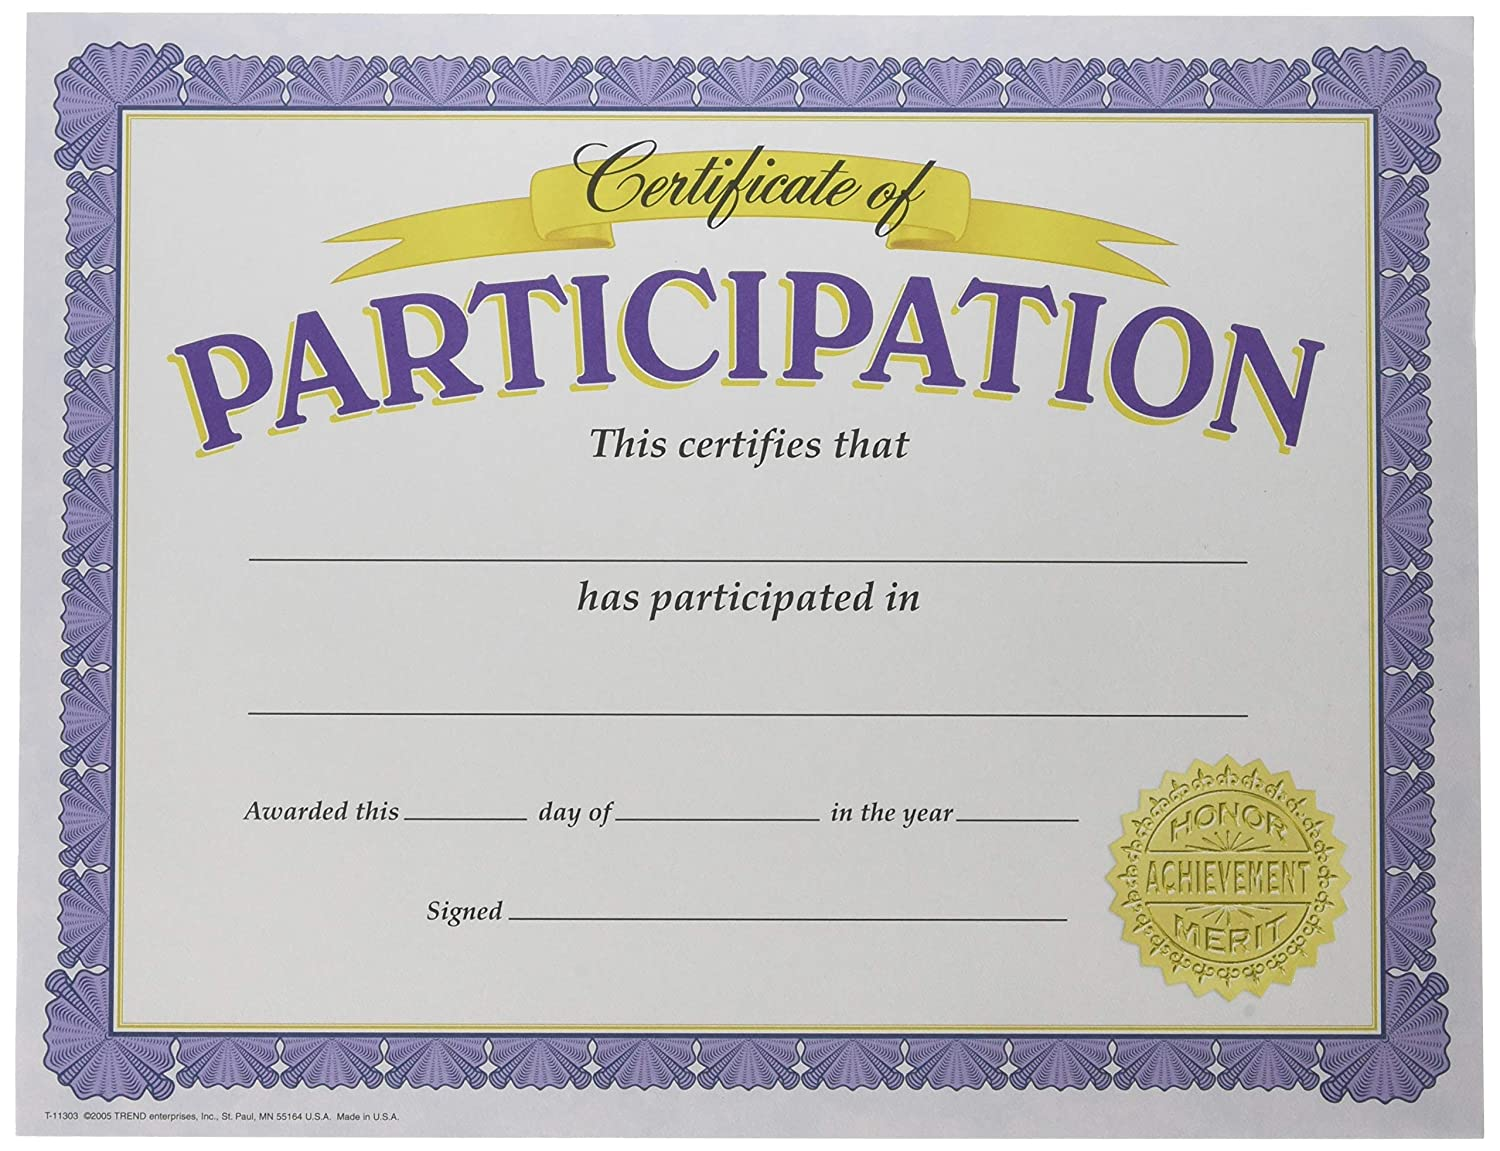 TREND enterprises, Inc. Certificate of Participation Classic Certificates, 30 ct T-11303